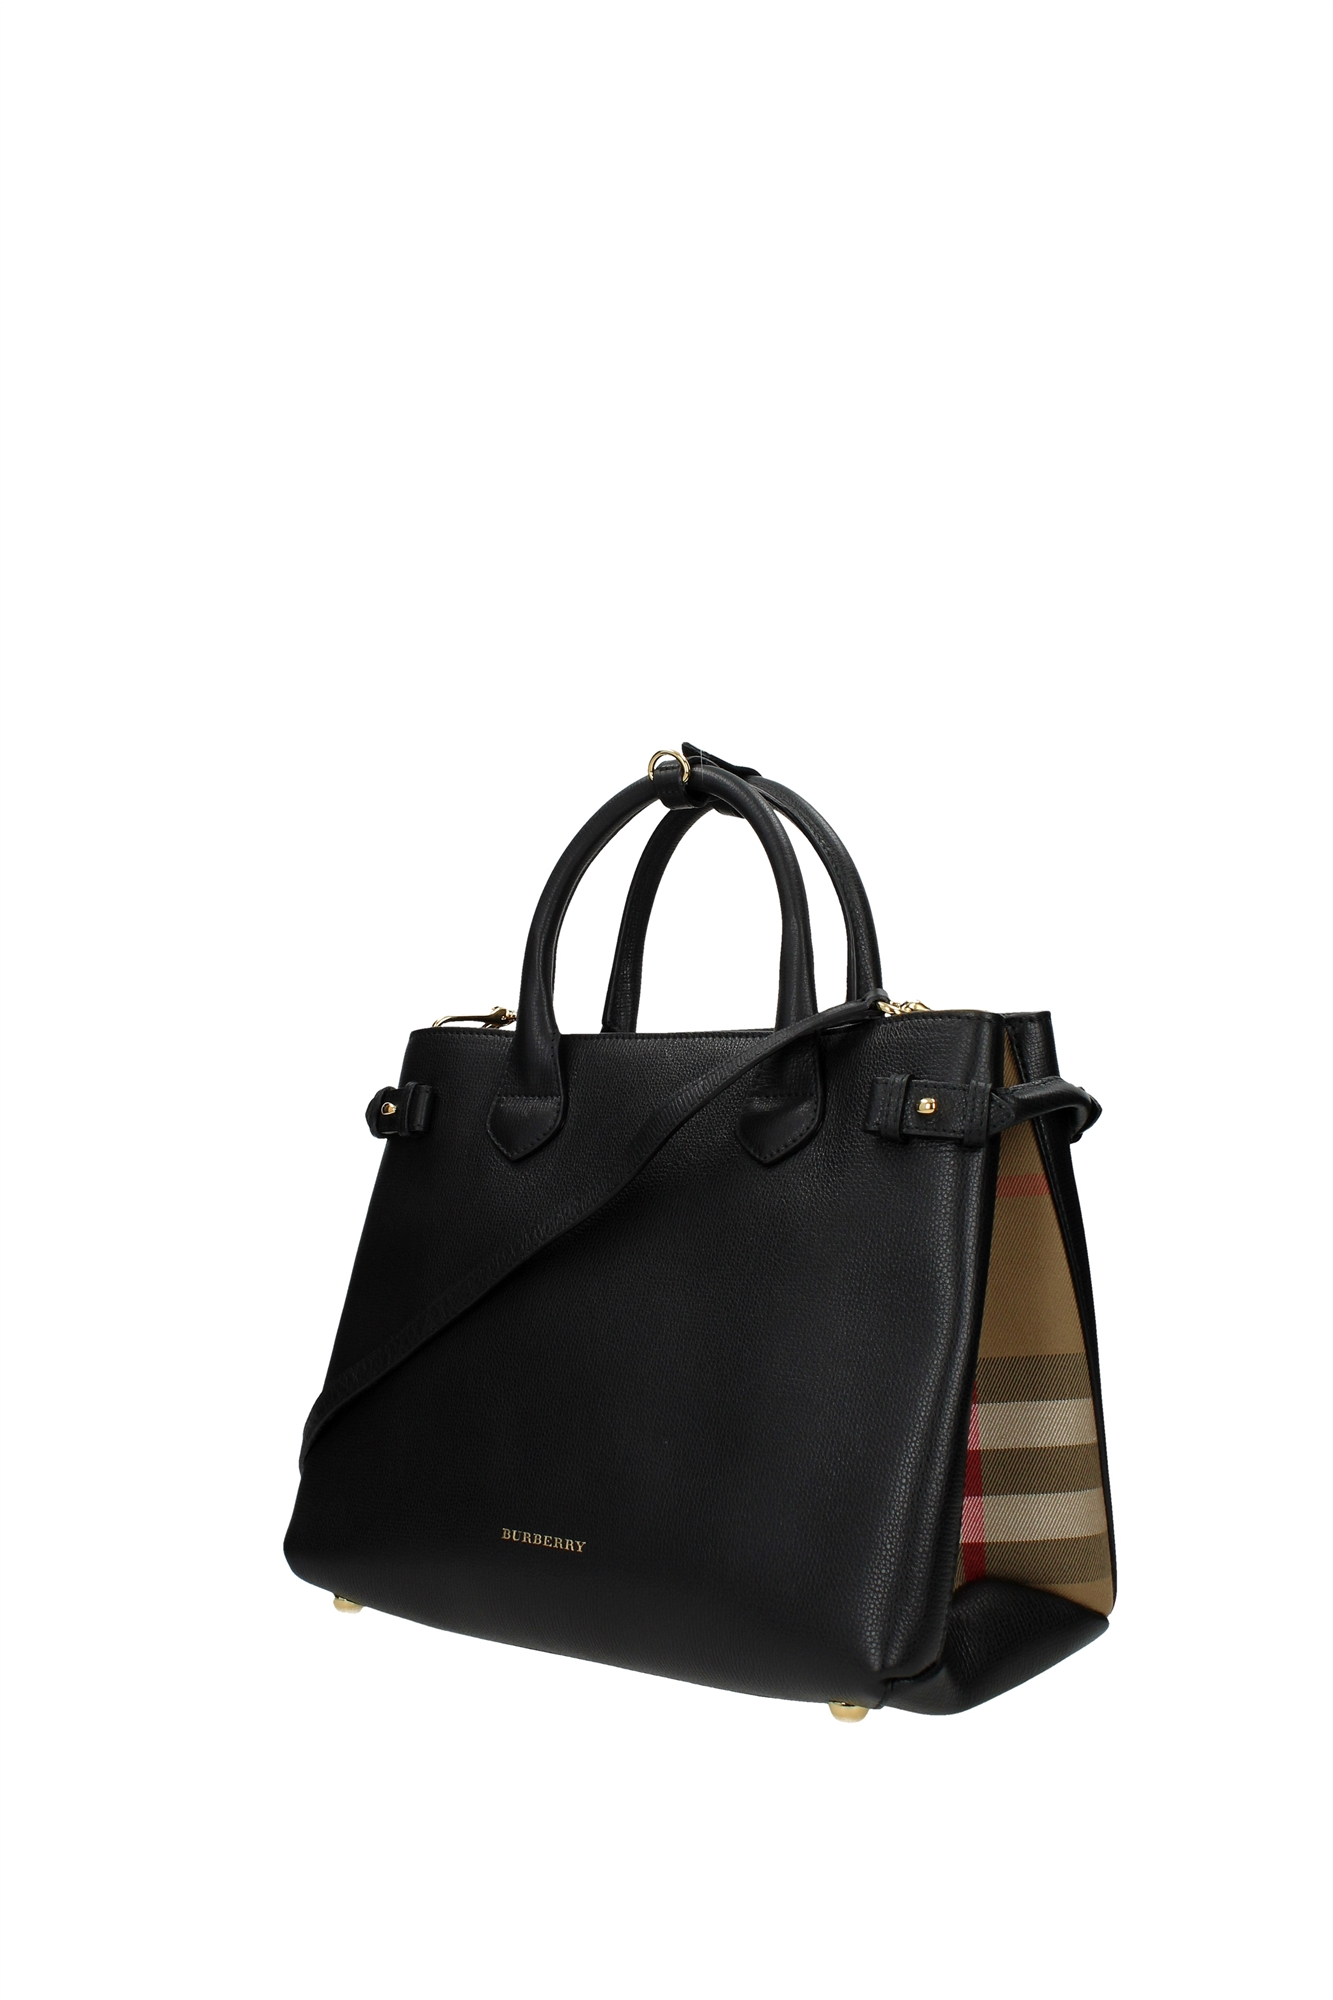 bc88a1d7cc52 Hand Bags Burberry Women Leather Black 3958978